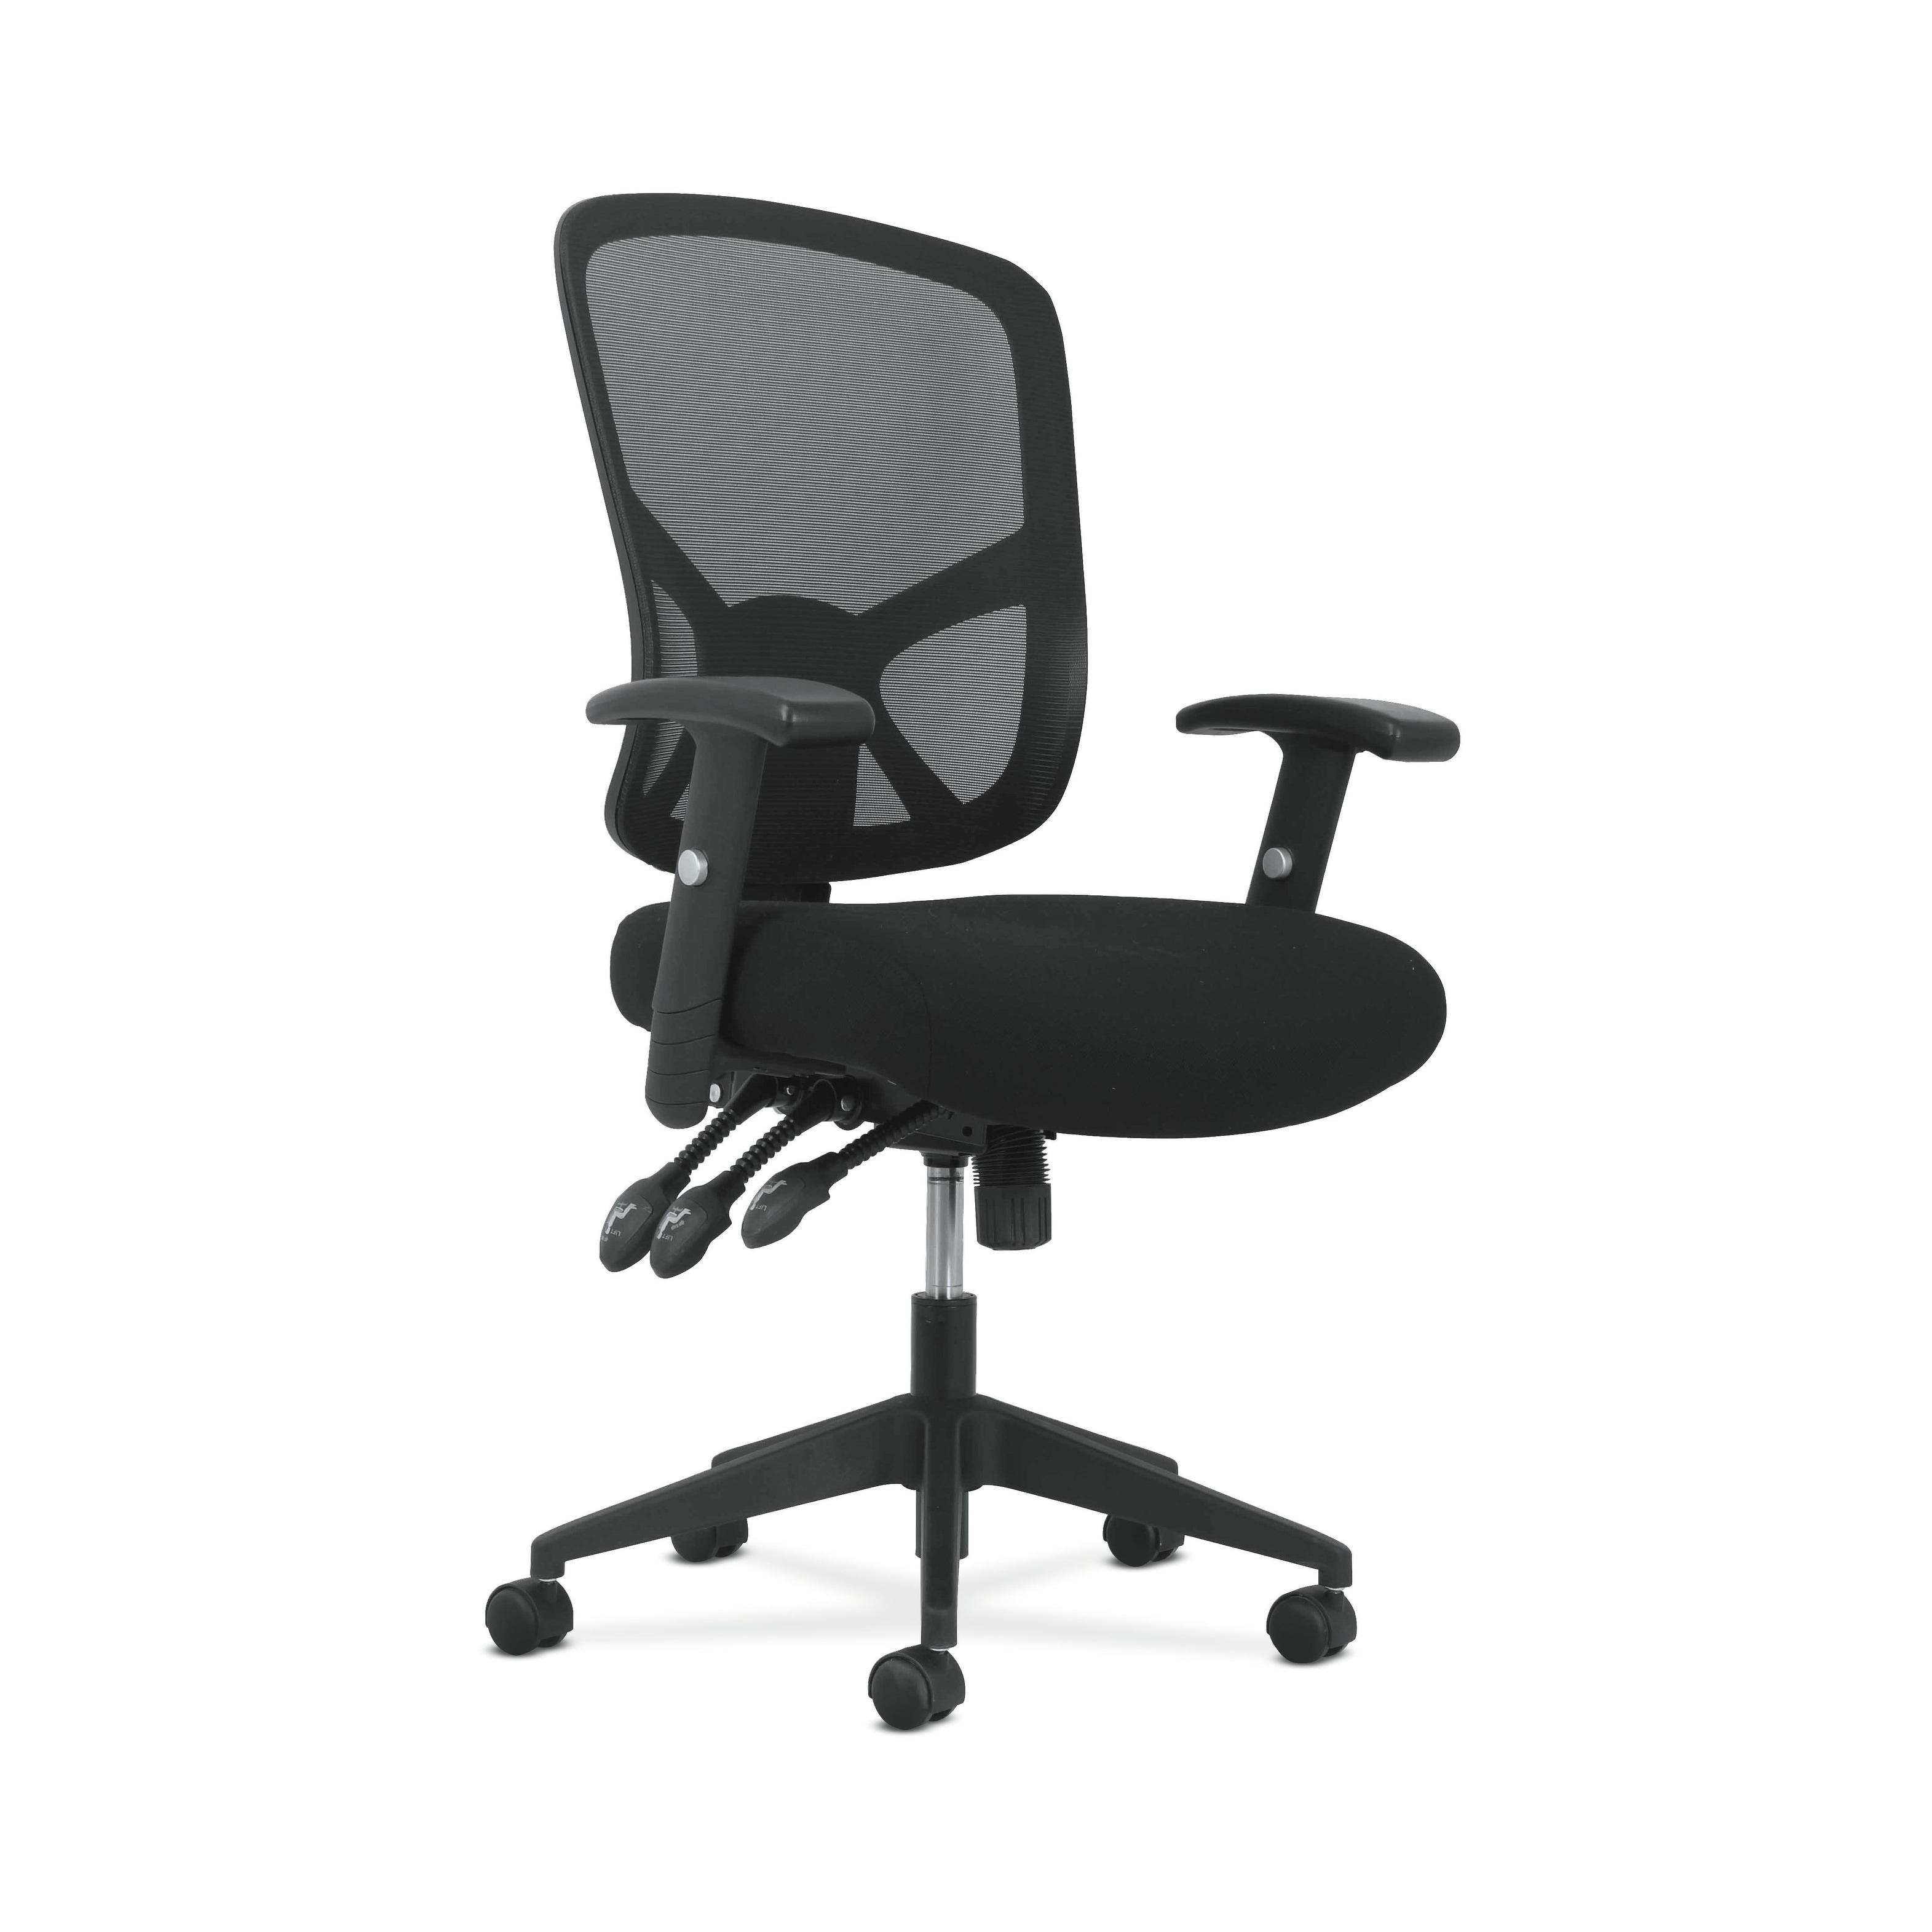 Sadie Customizable Ergonomic High Back Mesh Task Chair With Arms And Lumbar Support Computer Office Chair Bsxvst121 Overstock 23123306